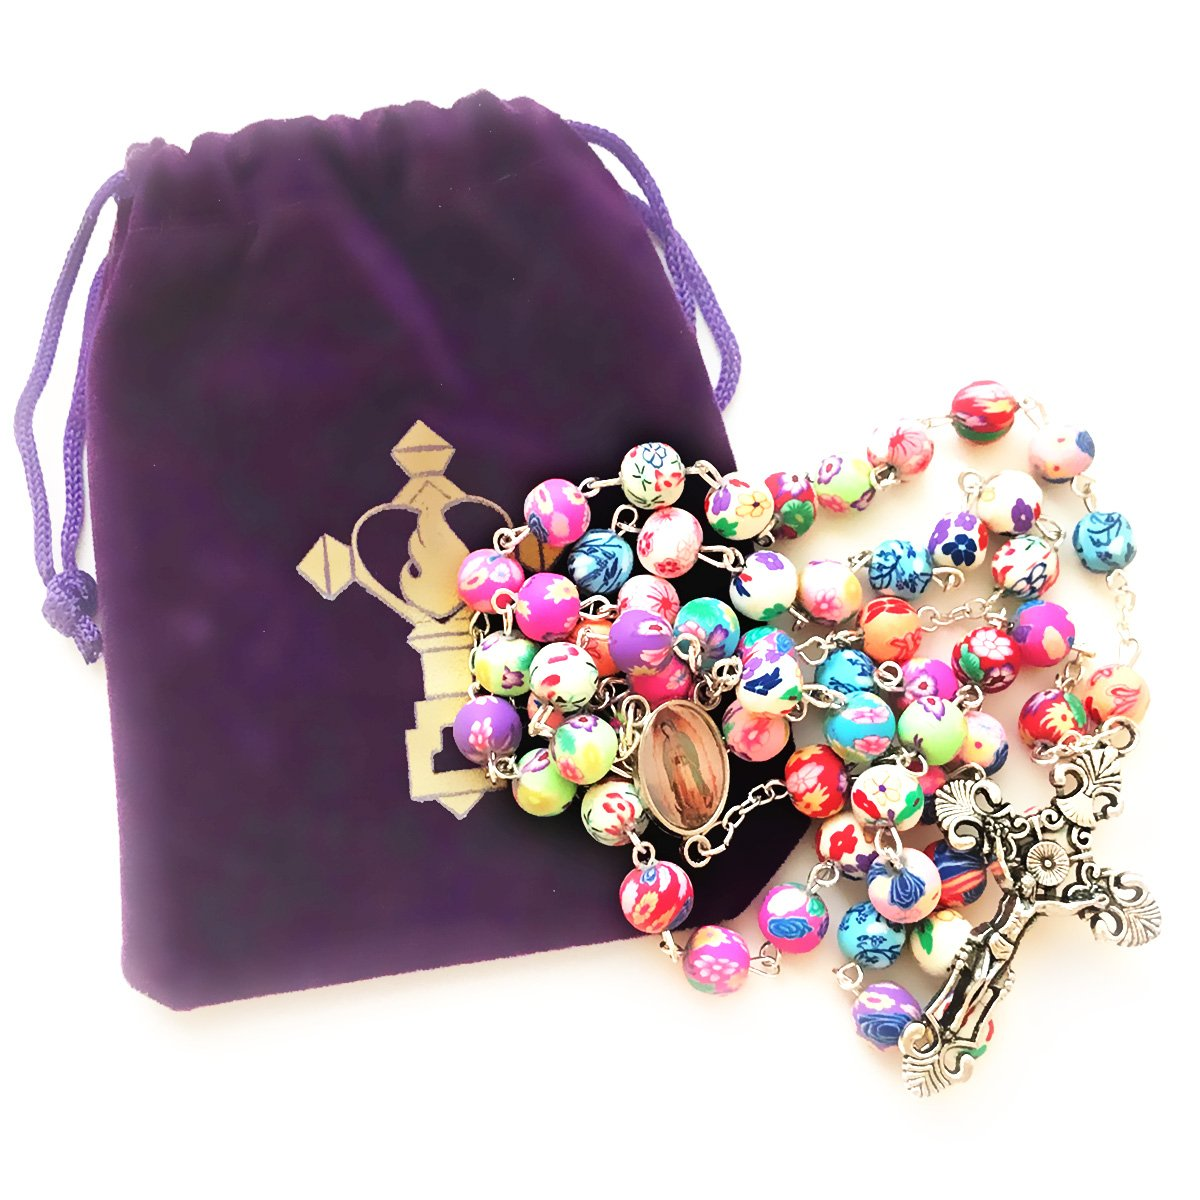 Rosary Beads Necklace For Women or Men - Catholic Girls or Boys First Holy Communion Gift - Guadalupe Virgin Mary Colorful Rosary with FREE Velvet Pouch